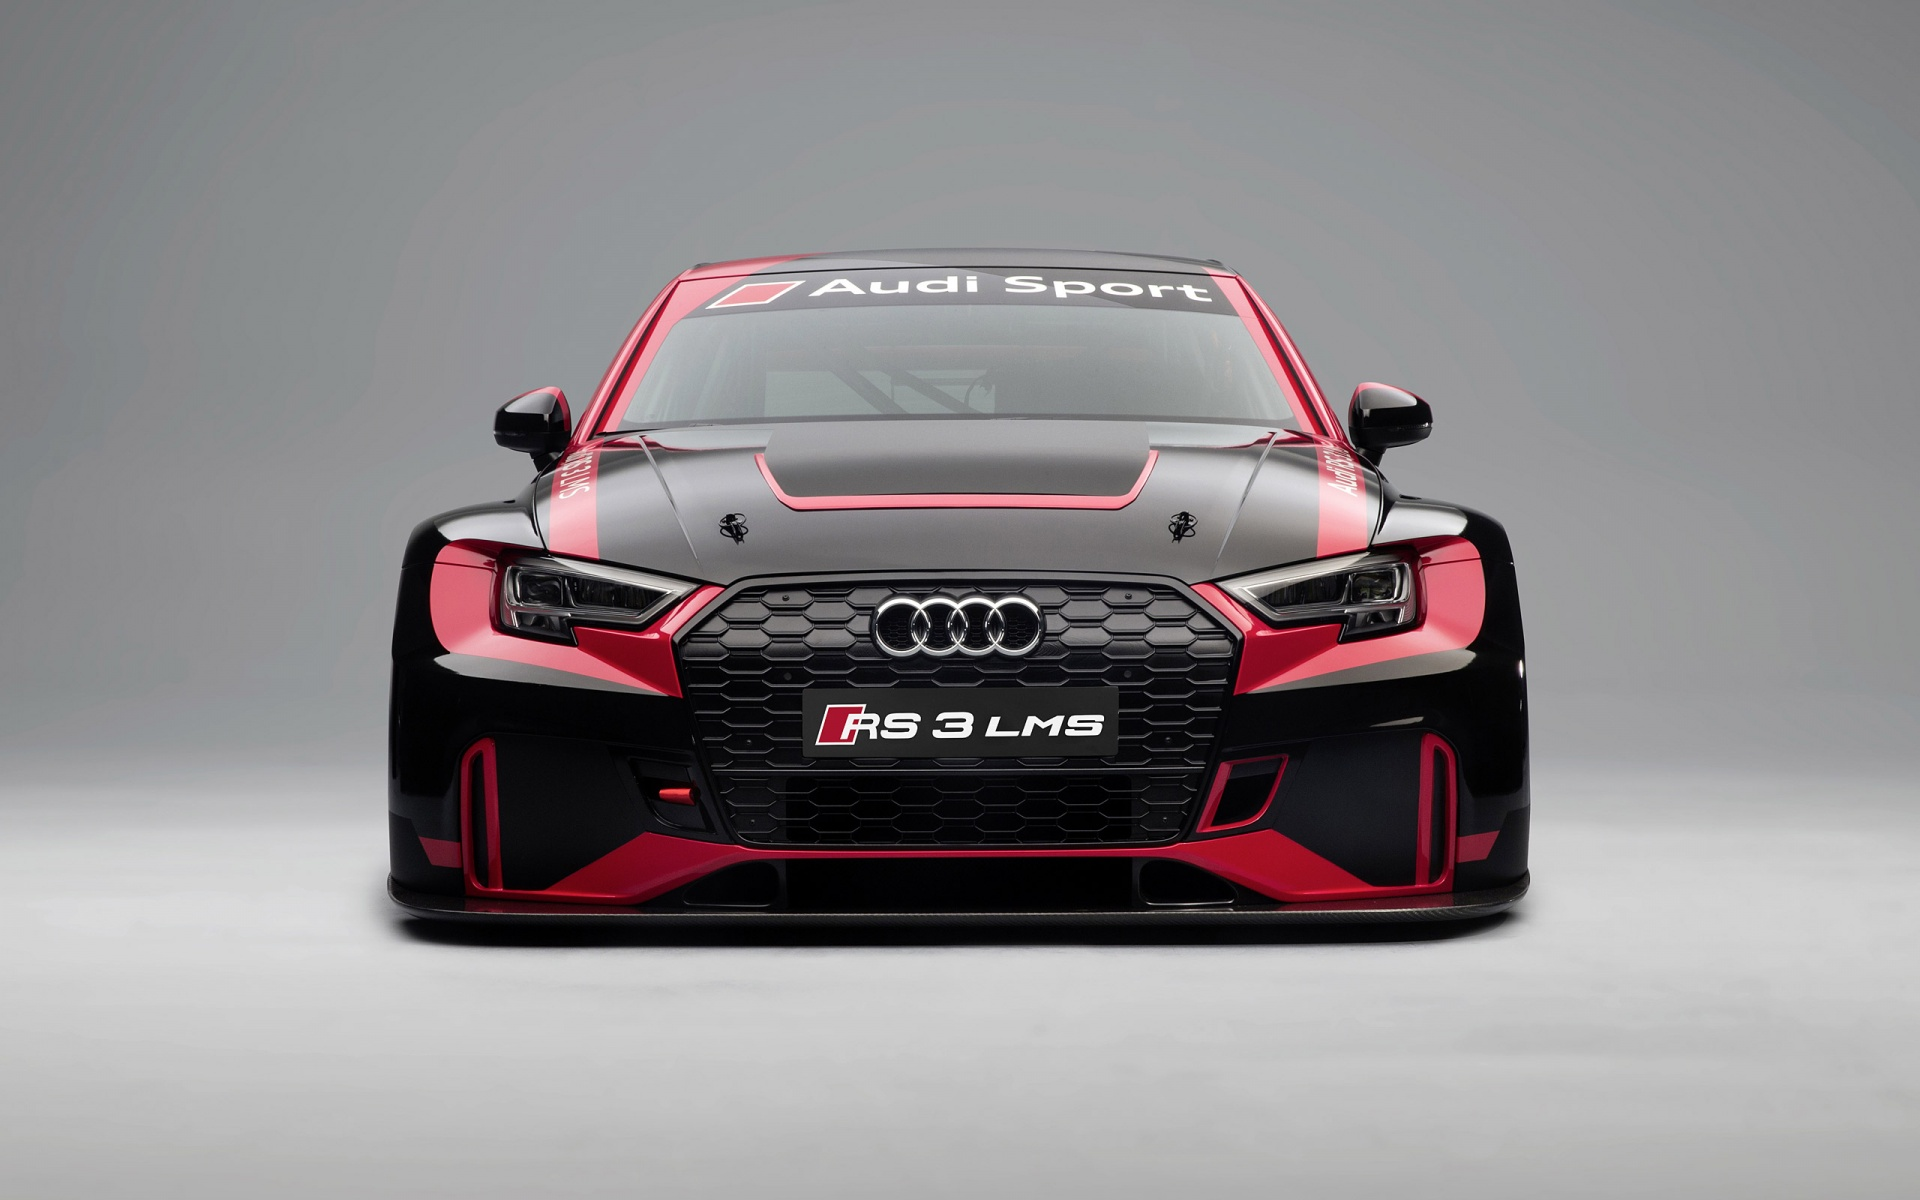 Audi RS3 LMS 2017 Wallpapers - 1920x1200 - 351583